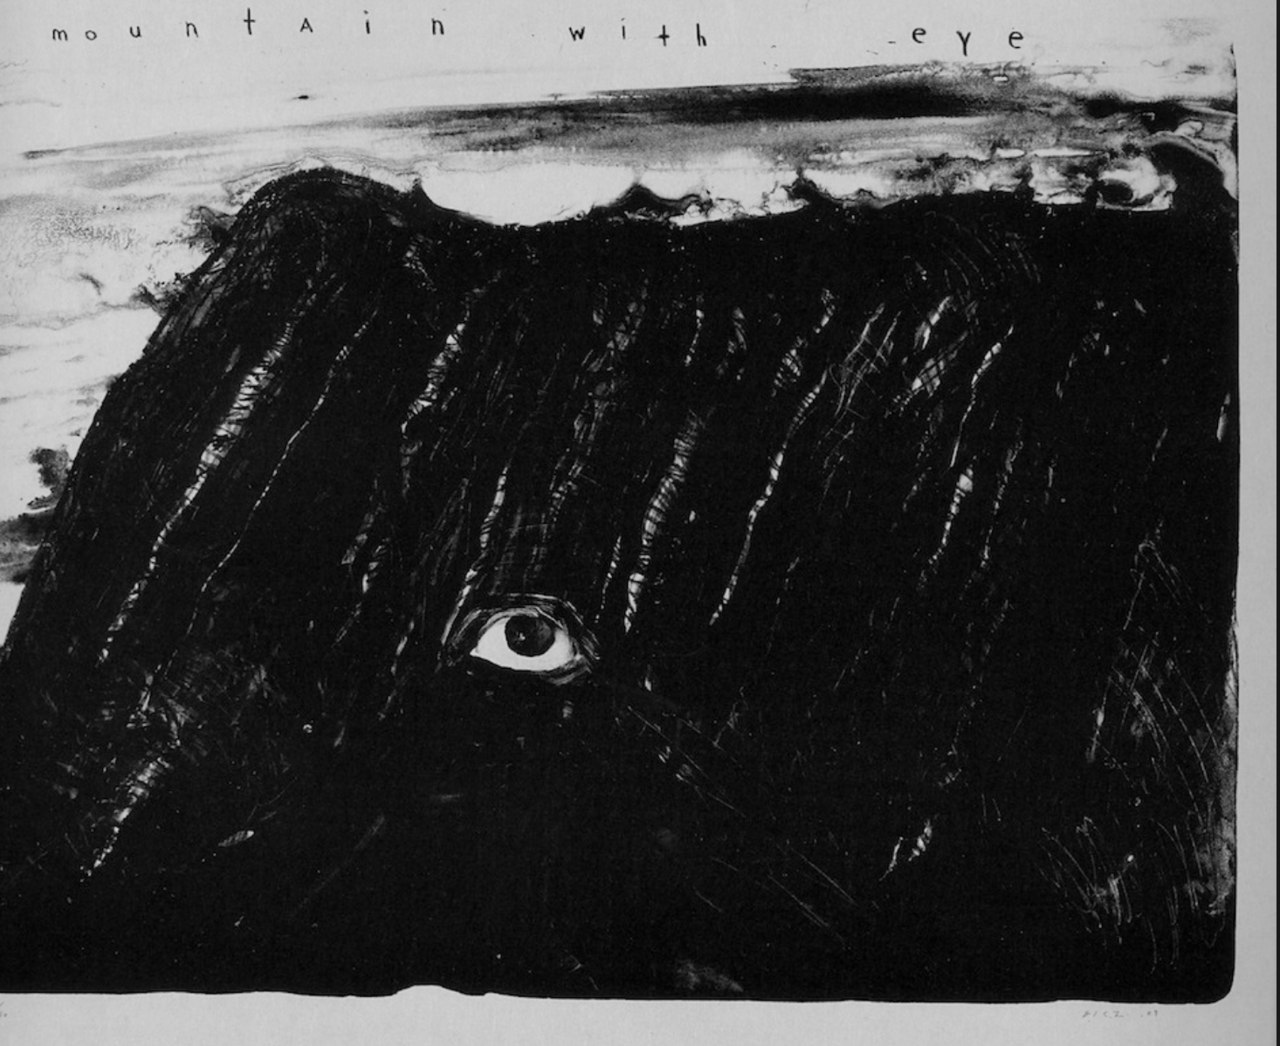 David Lynch, Mountain with eye / Caravana Negra